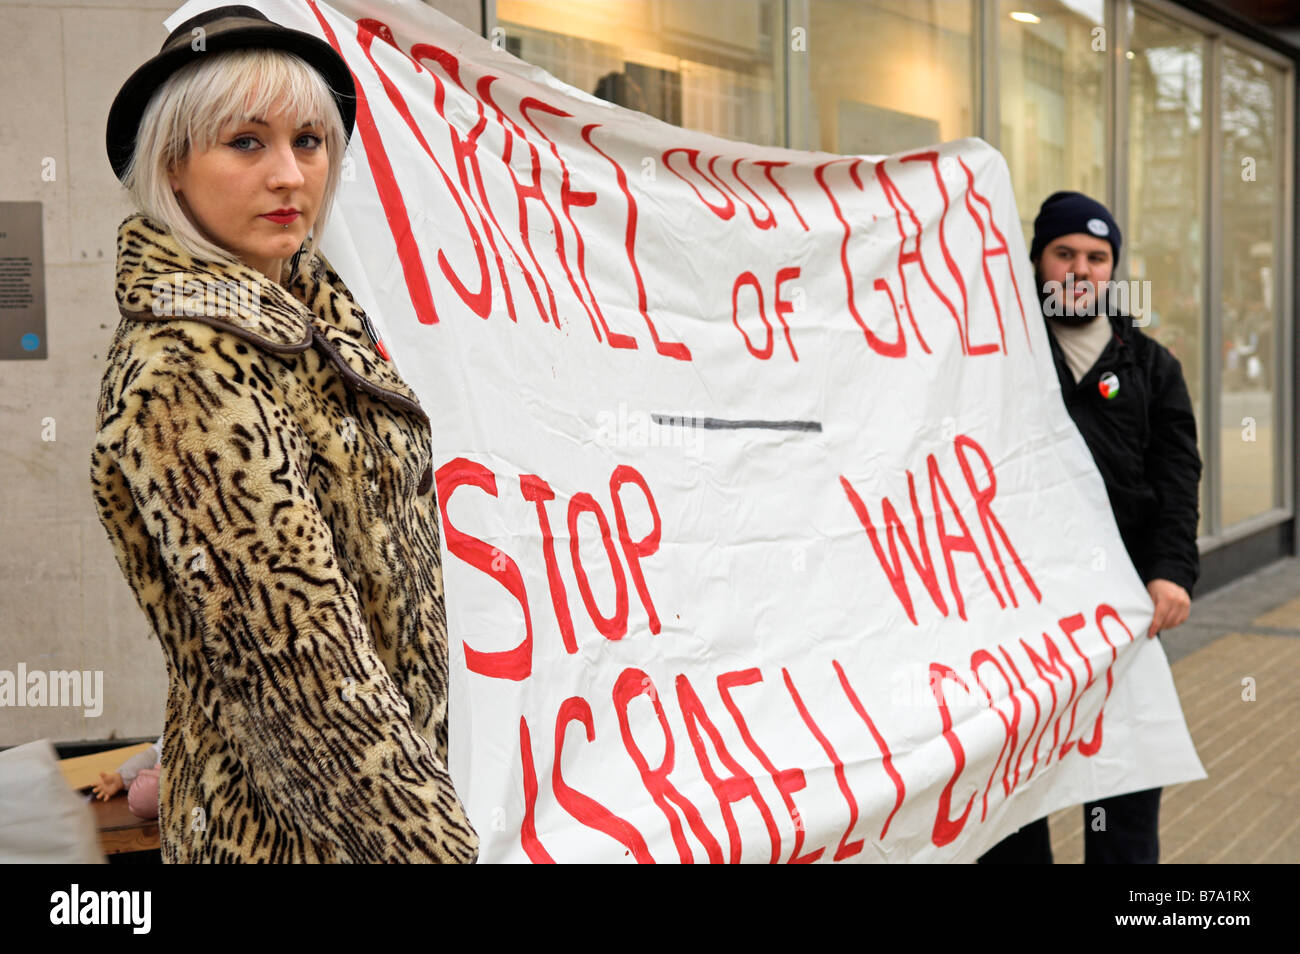 Protesters against the Israeli attacks on Gaza holding sign in Bristol UK 18 January 2009 - Stock Image